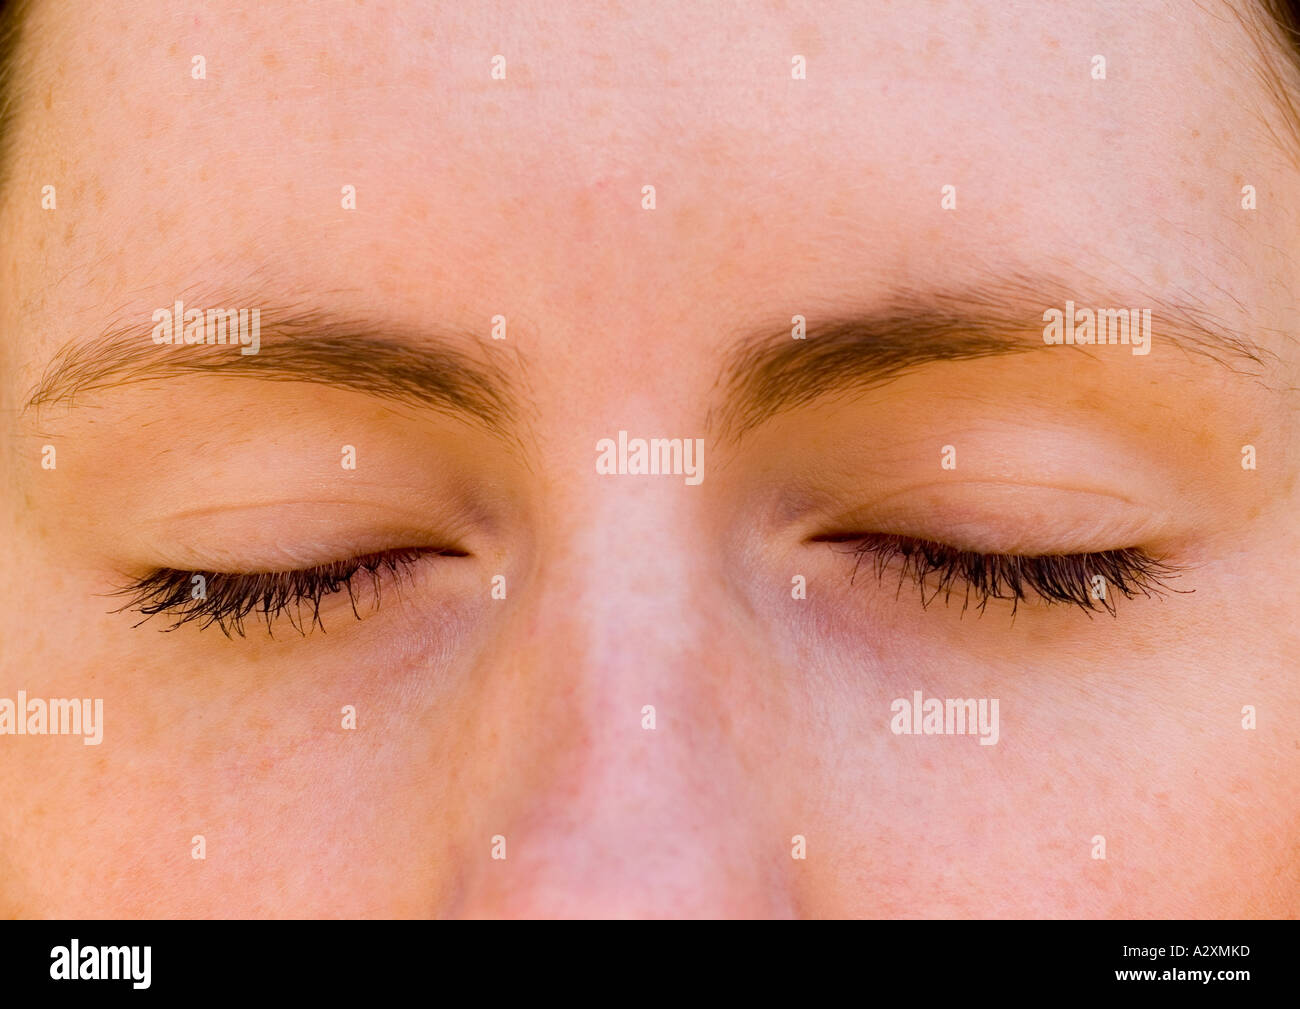 Young woman with eyes closed in thought or meditation - Stock Image